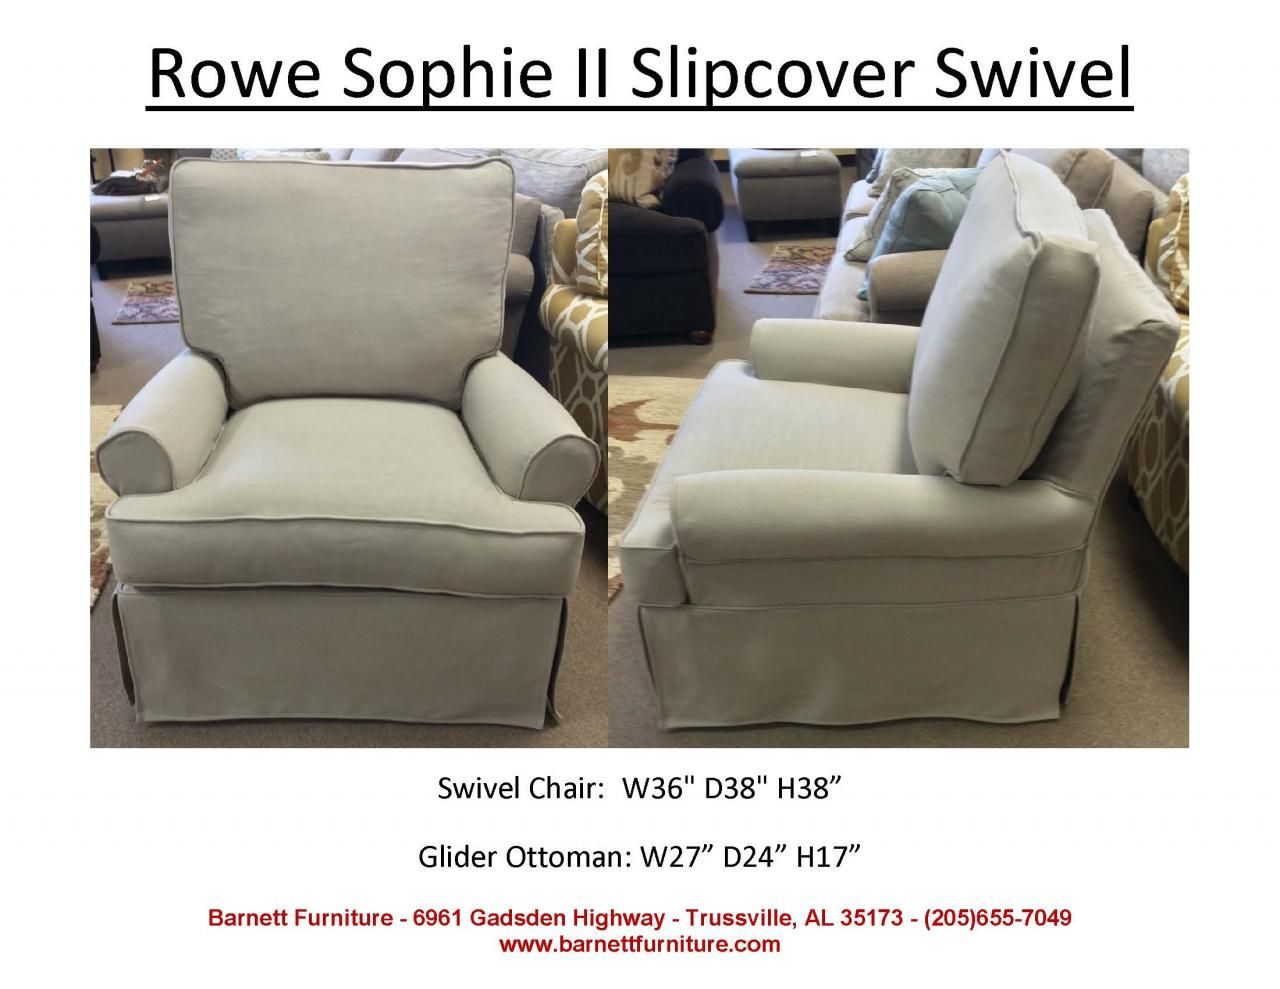 Beautiful Rowe Furniture Sophie II Slipcover Swivel Chair